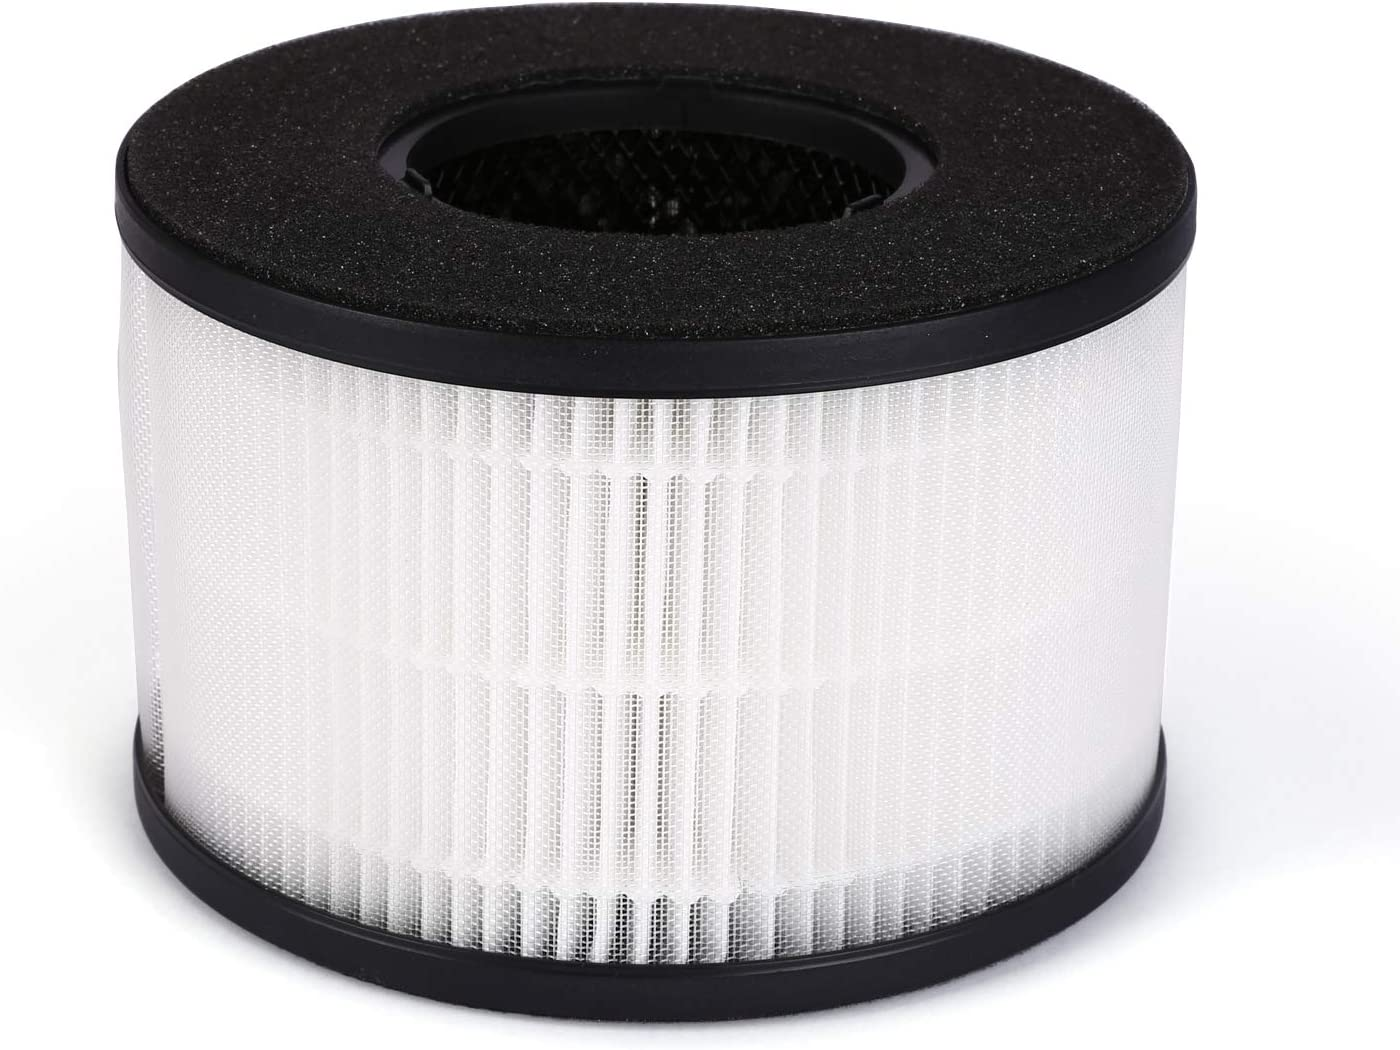 PARTU BS-03 HEPA Air Filter Replacement Filter, 3-in-1 Filtration System Include Pre-Filter, True HEPA Filter, Activated Carbon Filter.